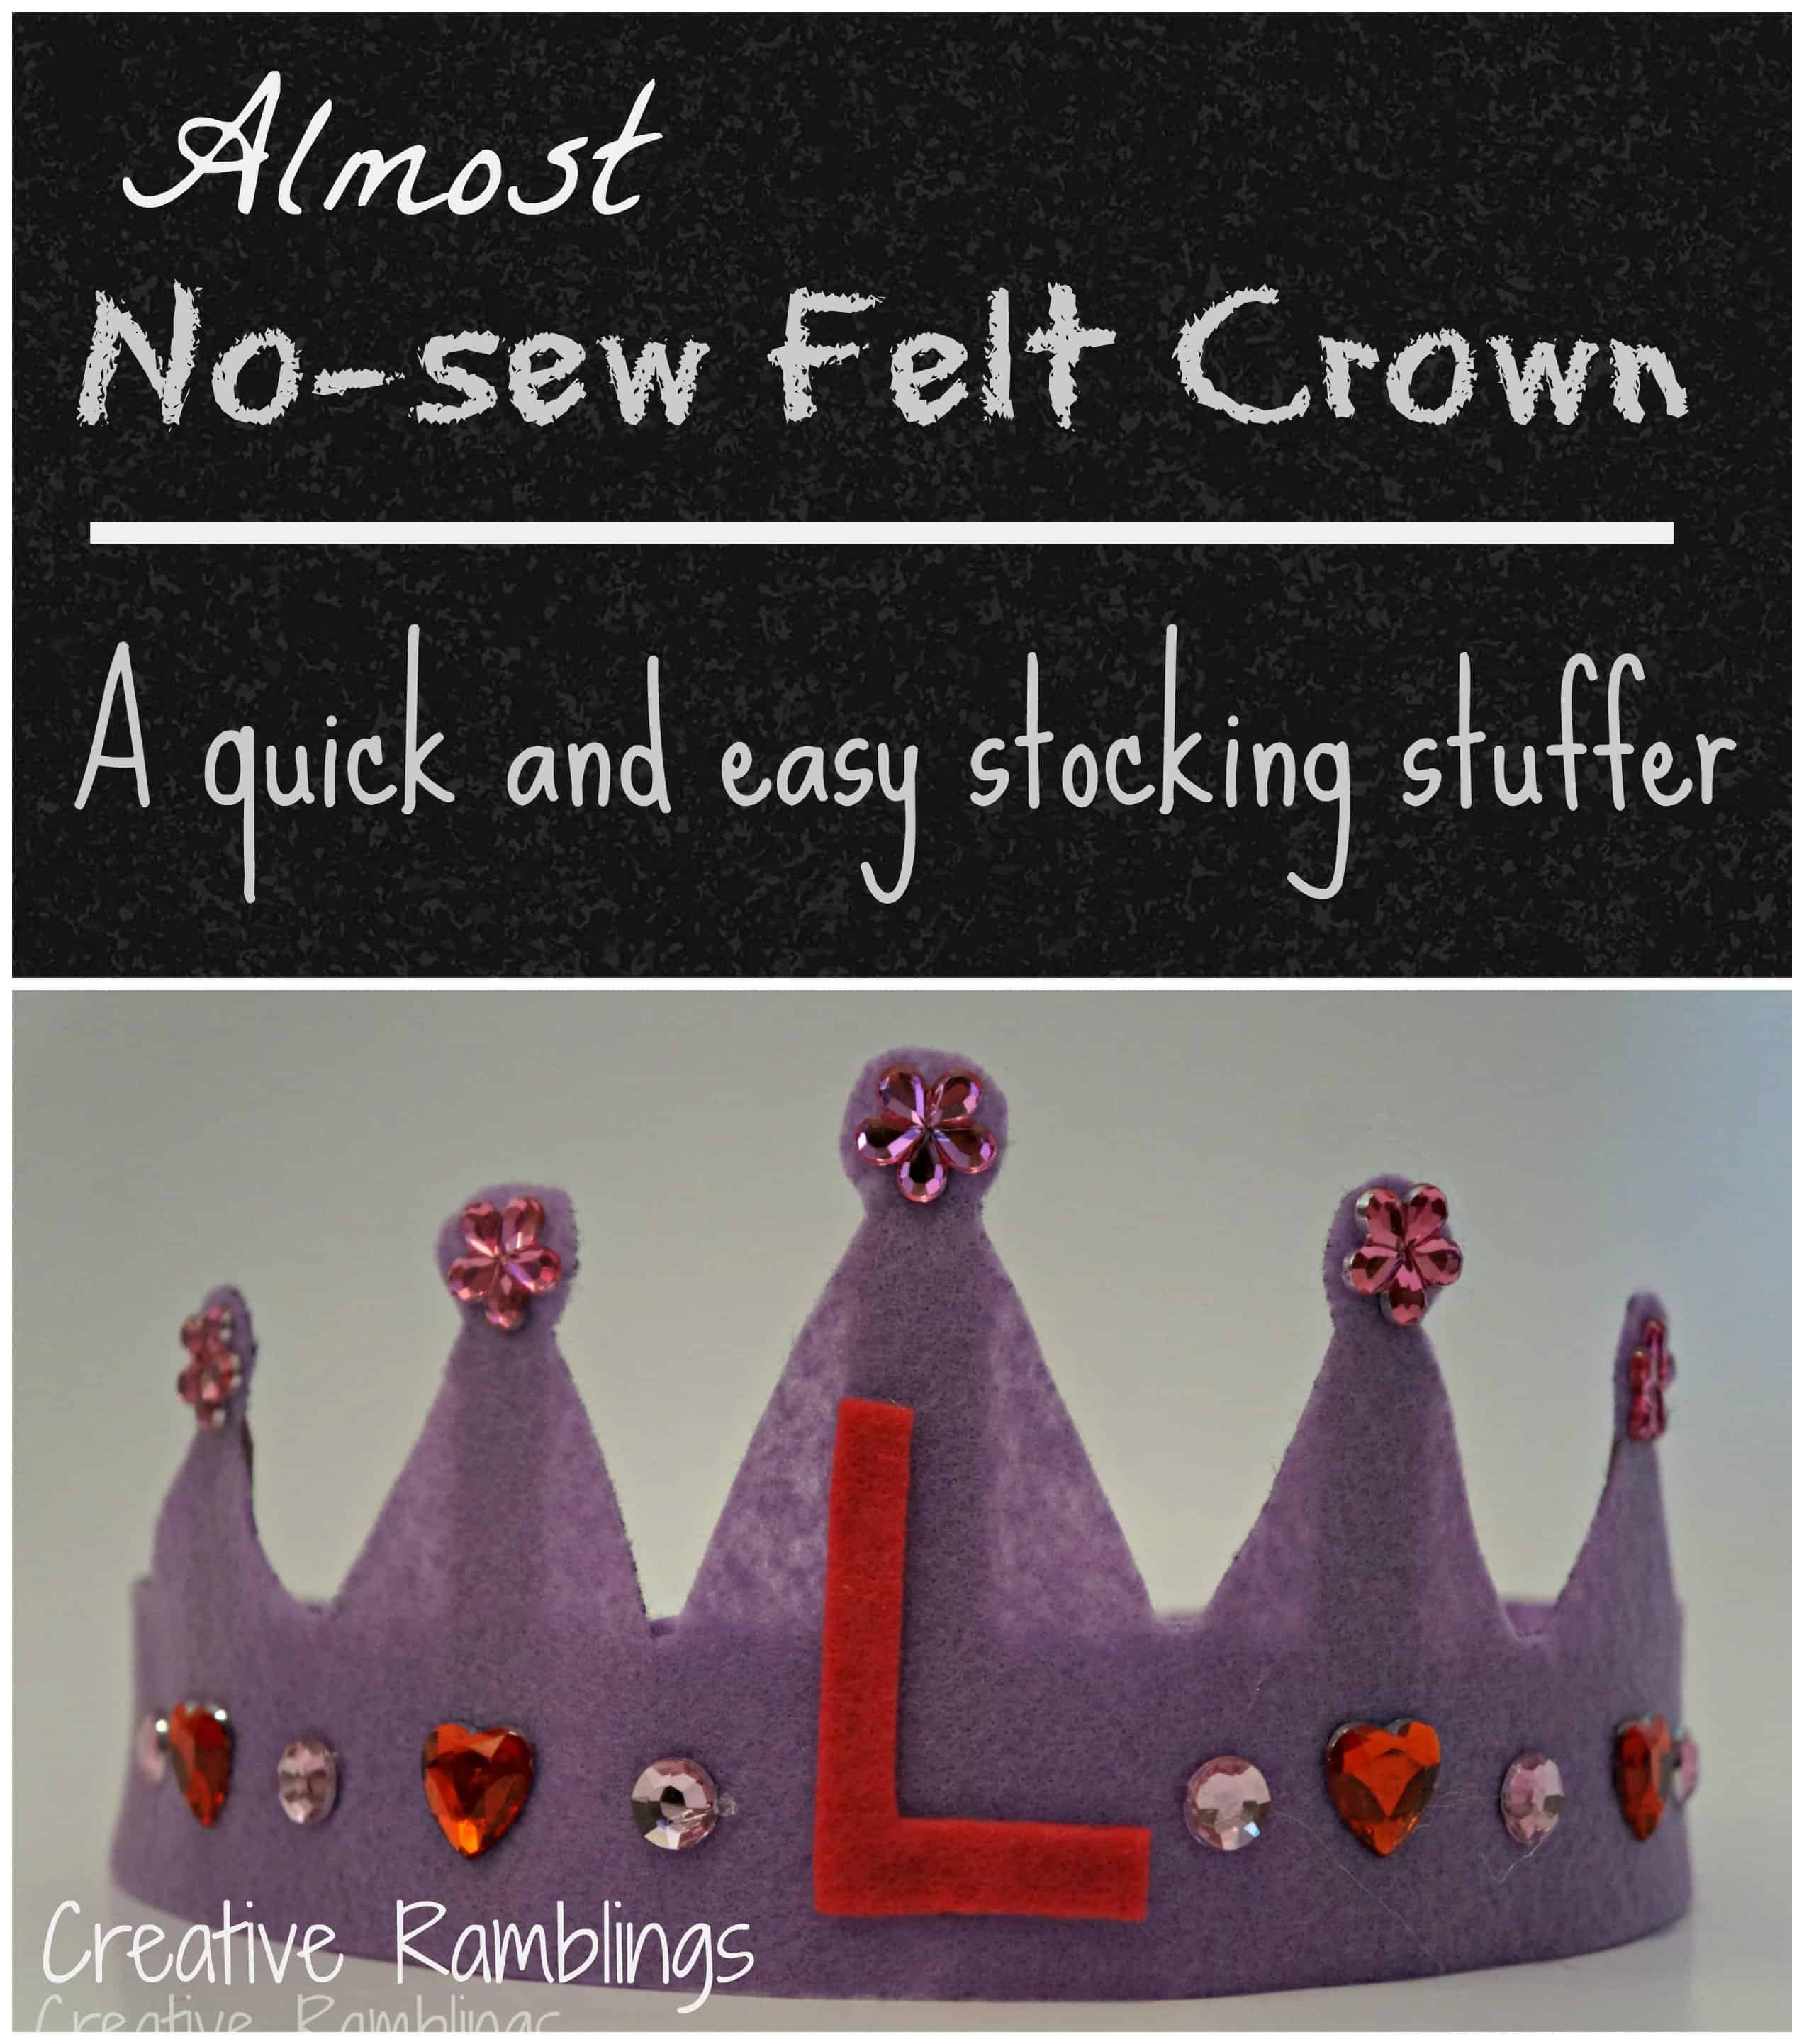 Almost no-sew felt crown - makes a great stocking stuffer